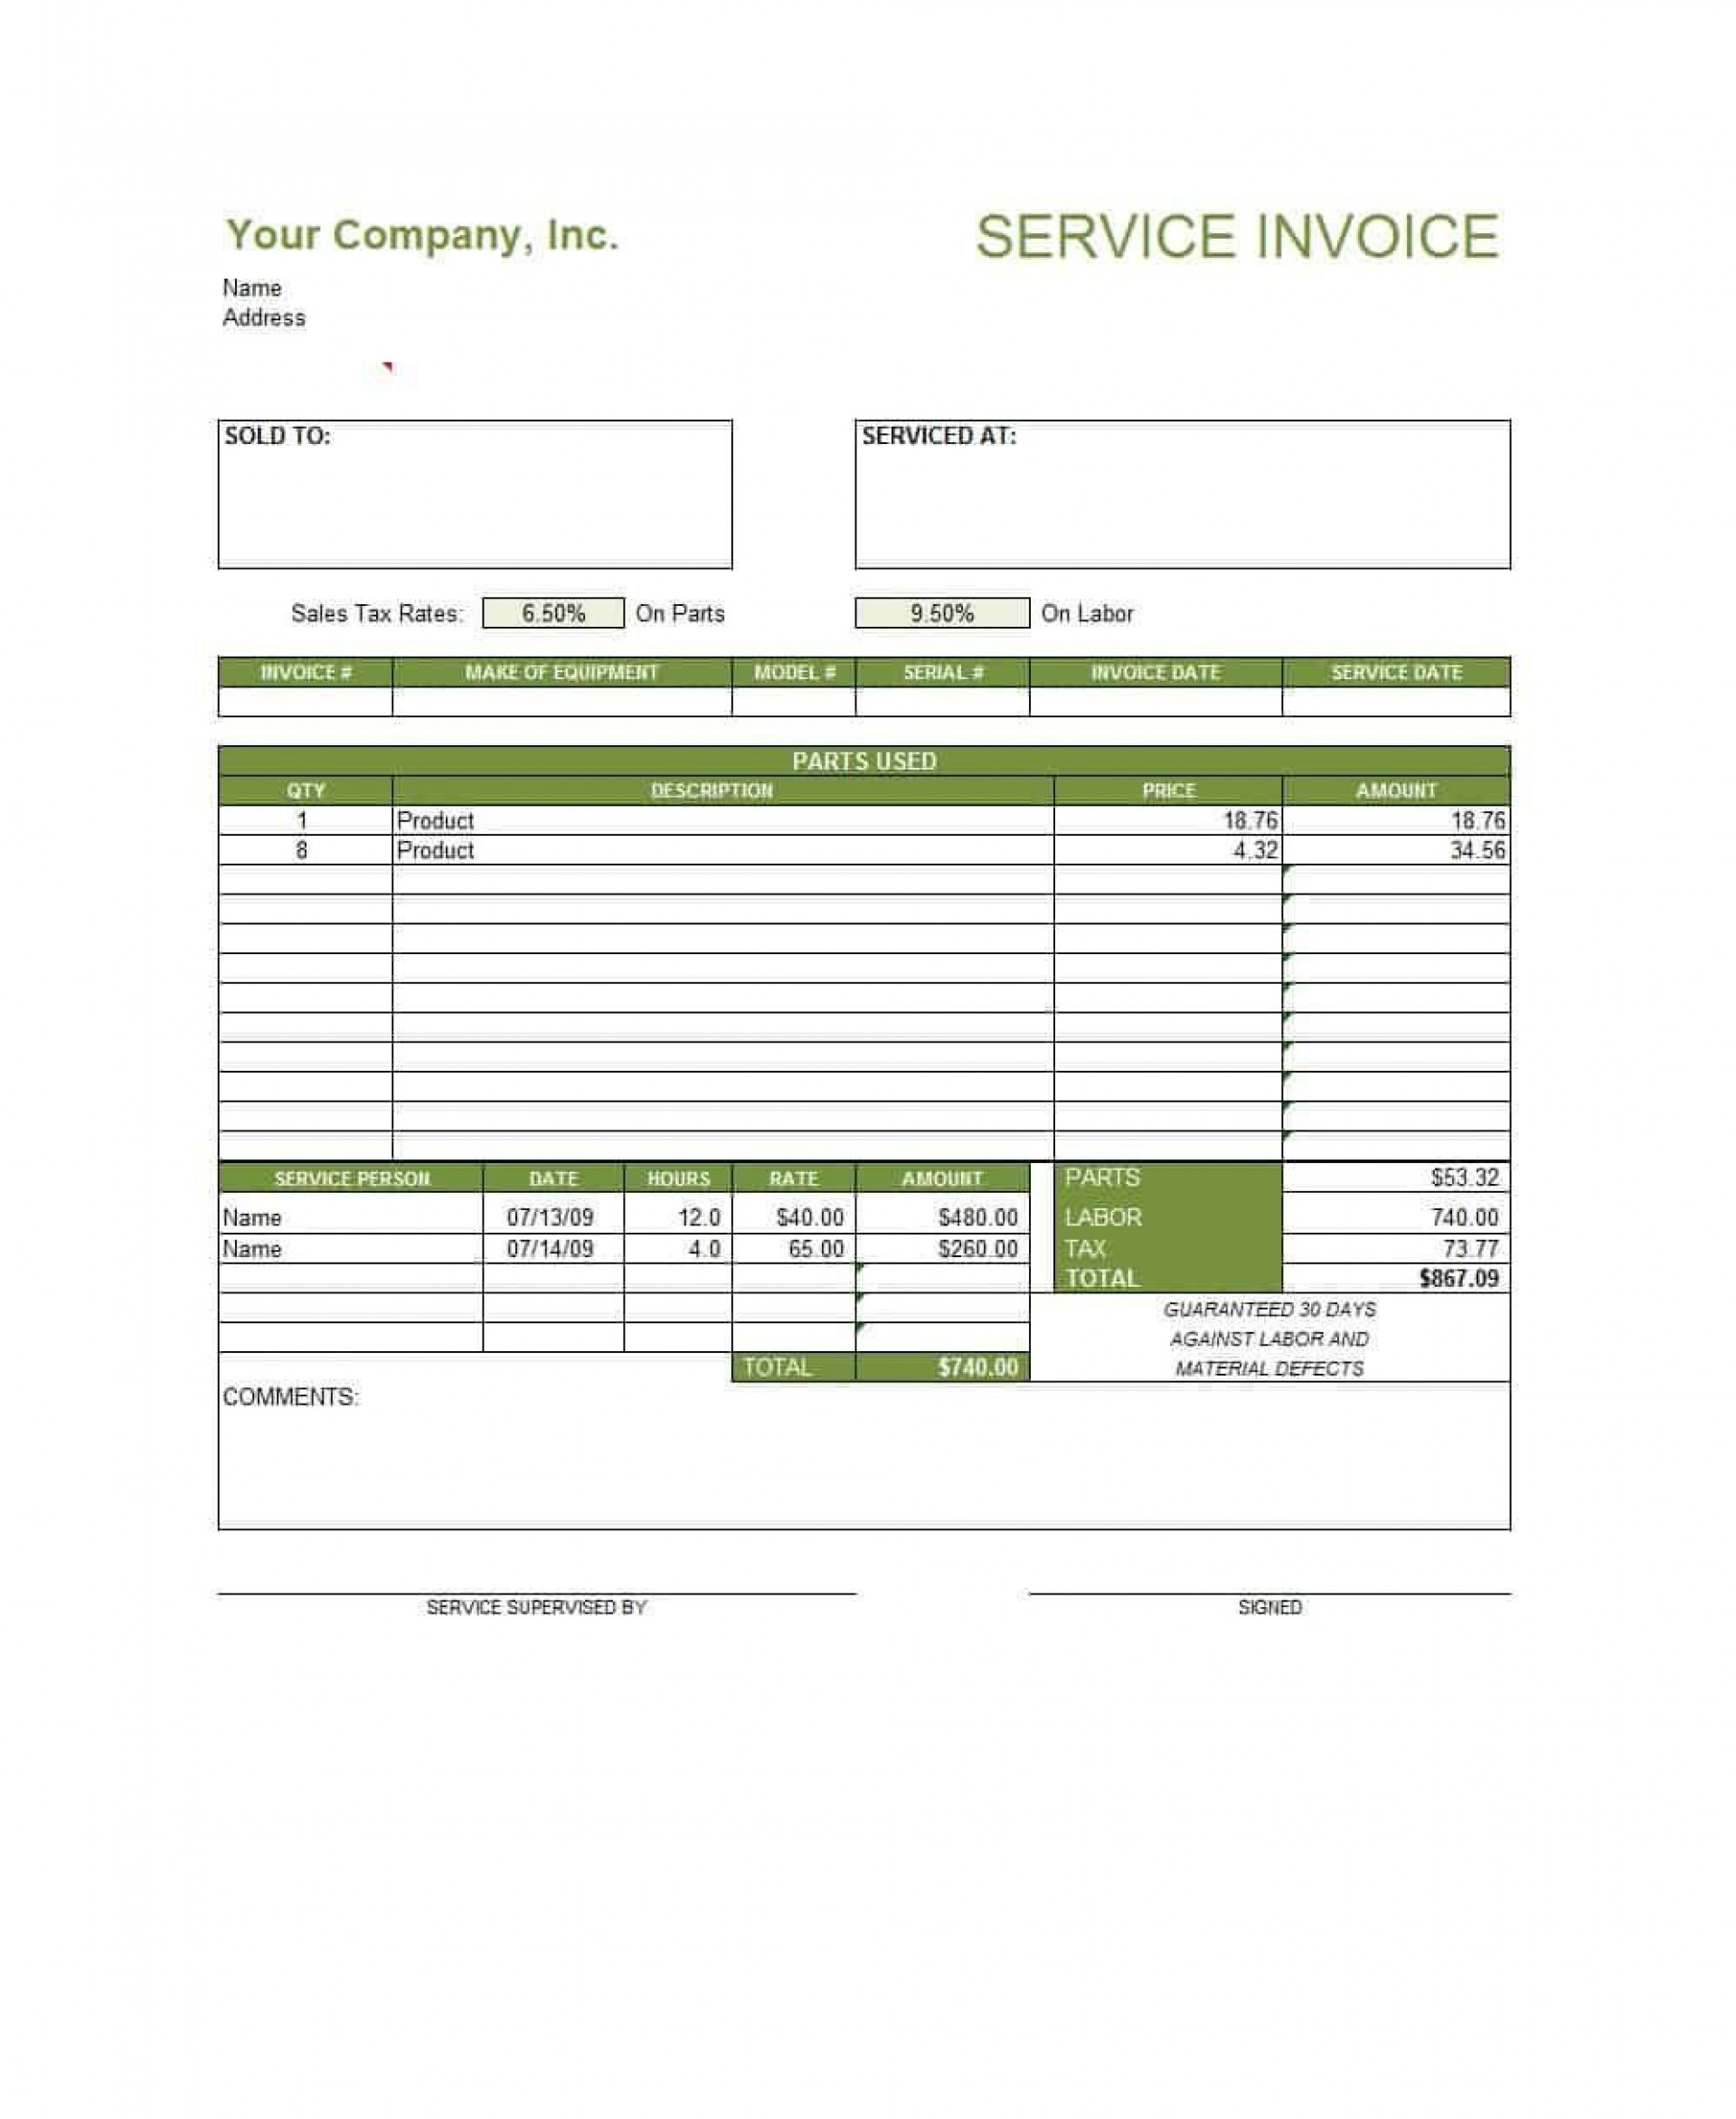 003 Excellent Service Invoice Template Free Highest Clarity  Rendered Word Auto Download1920